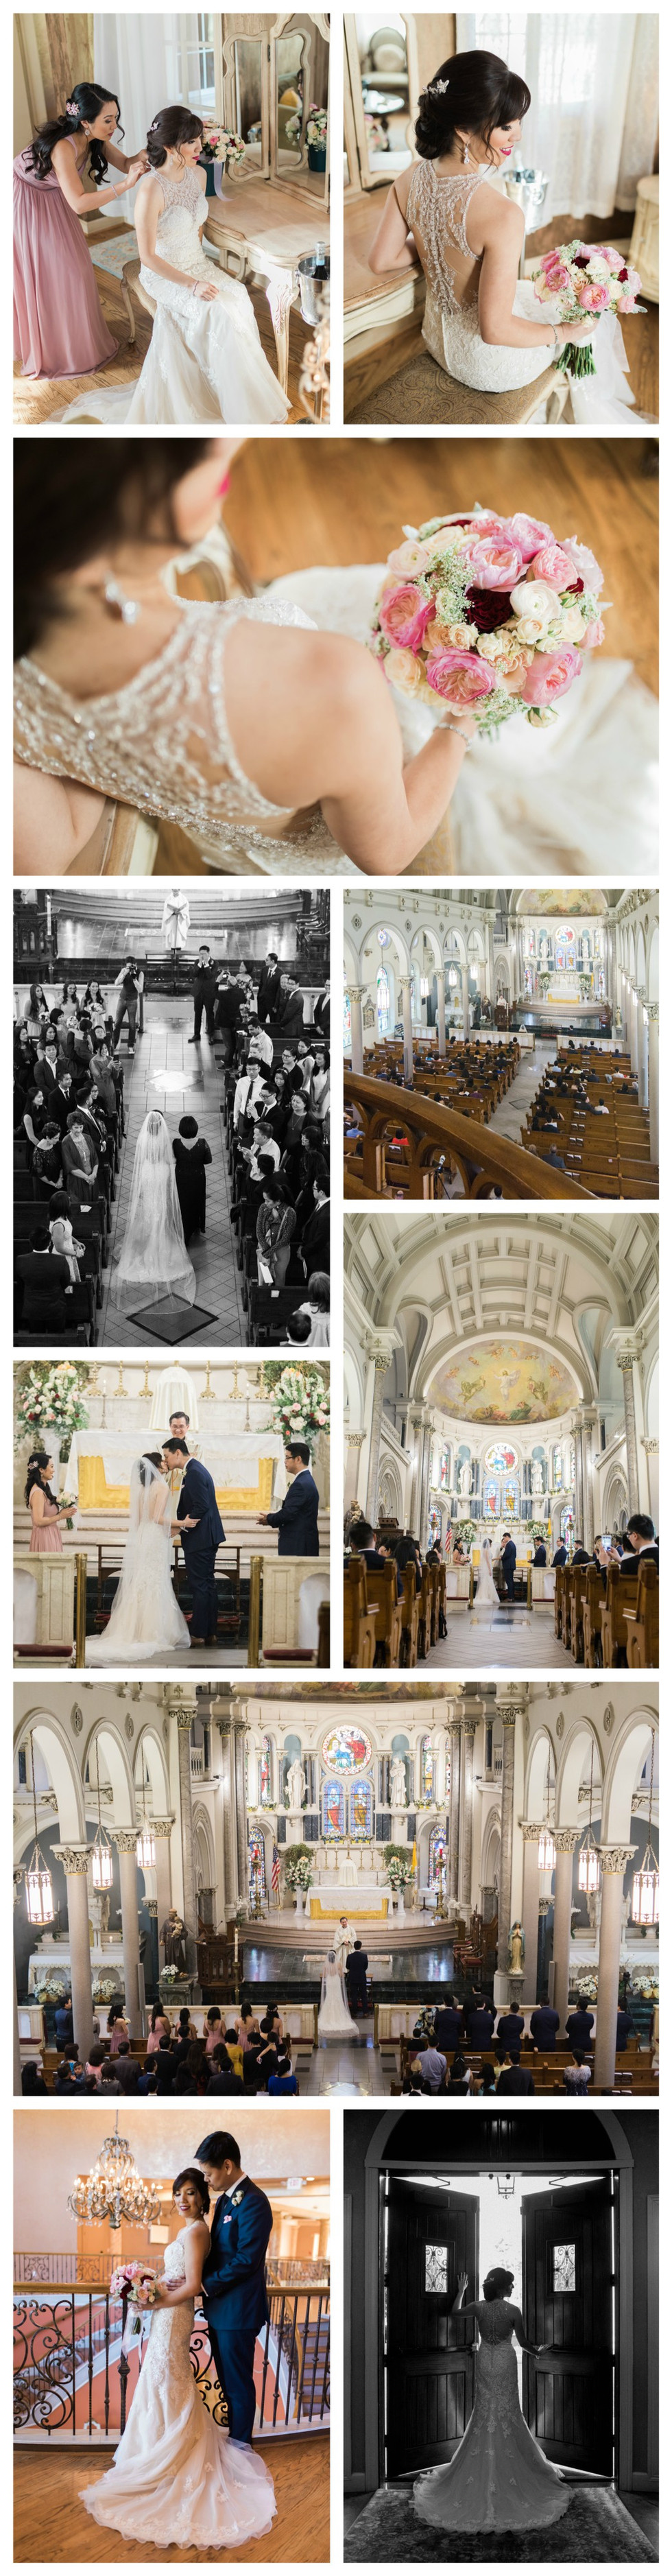 Katherine & Wey's Wedding Photo Journal